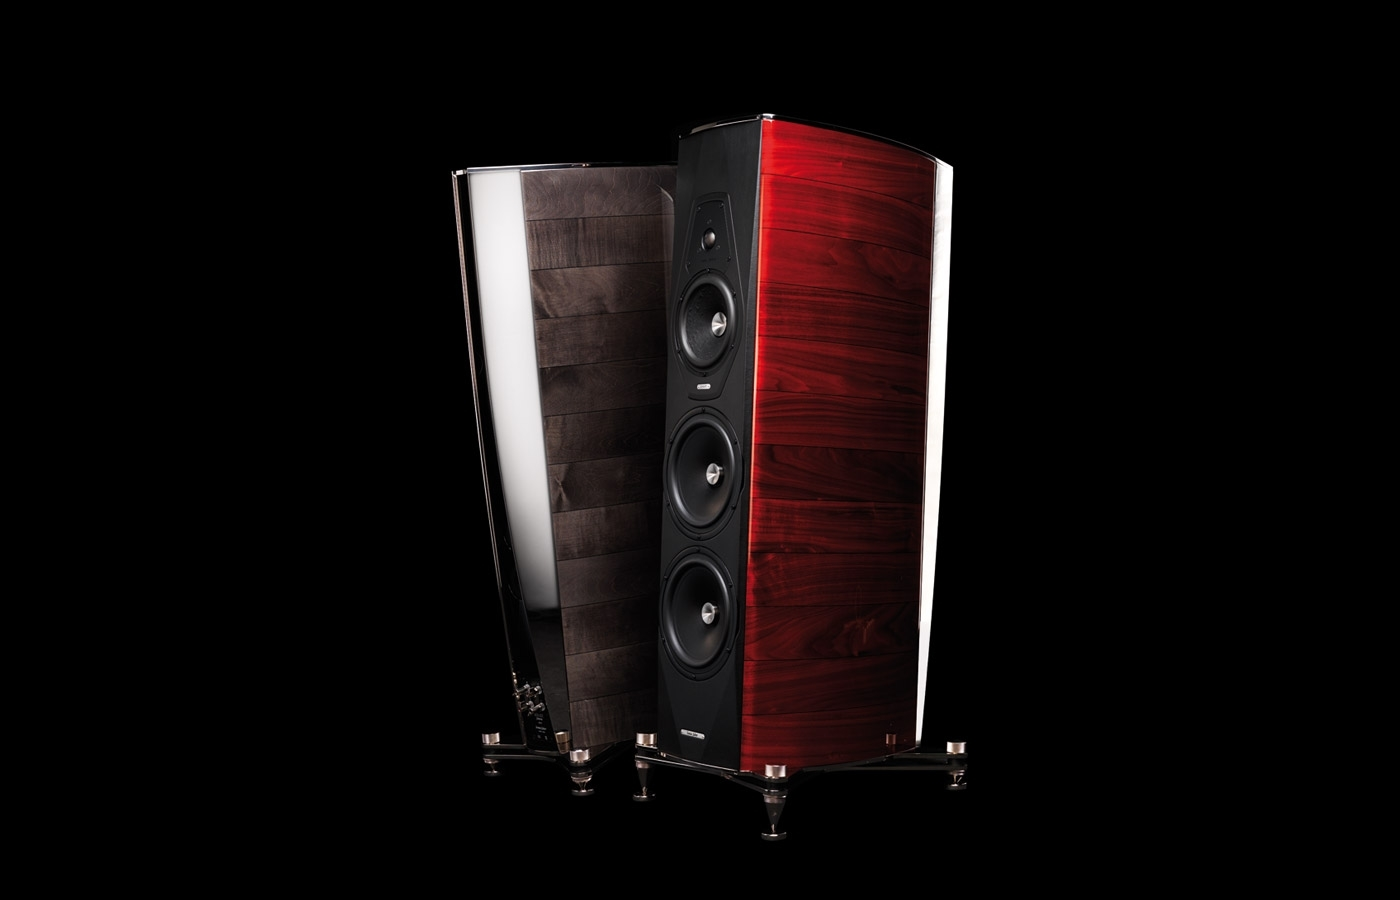 The Sonus Faber Amati Futura Speaker Review | Steve Huff Photo